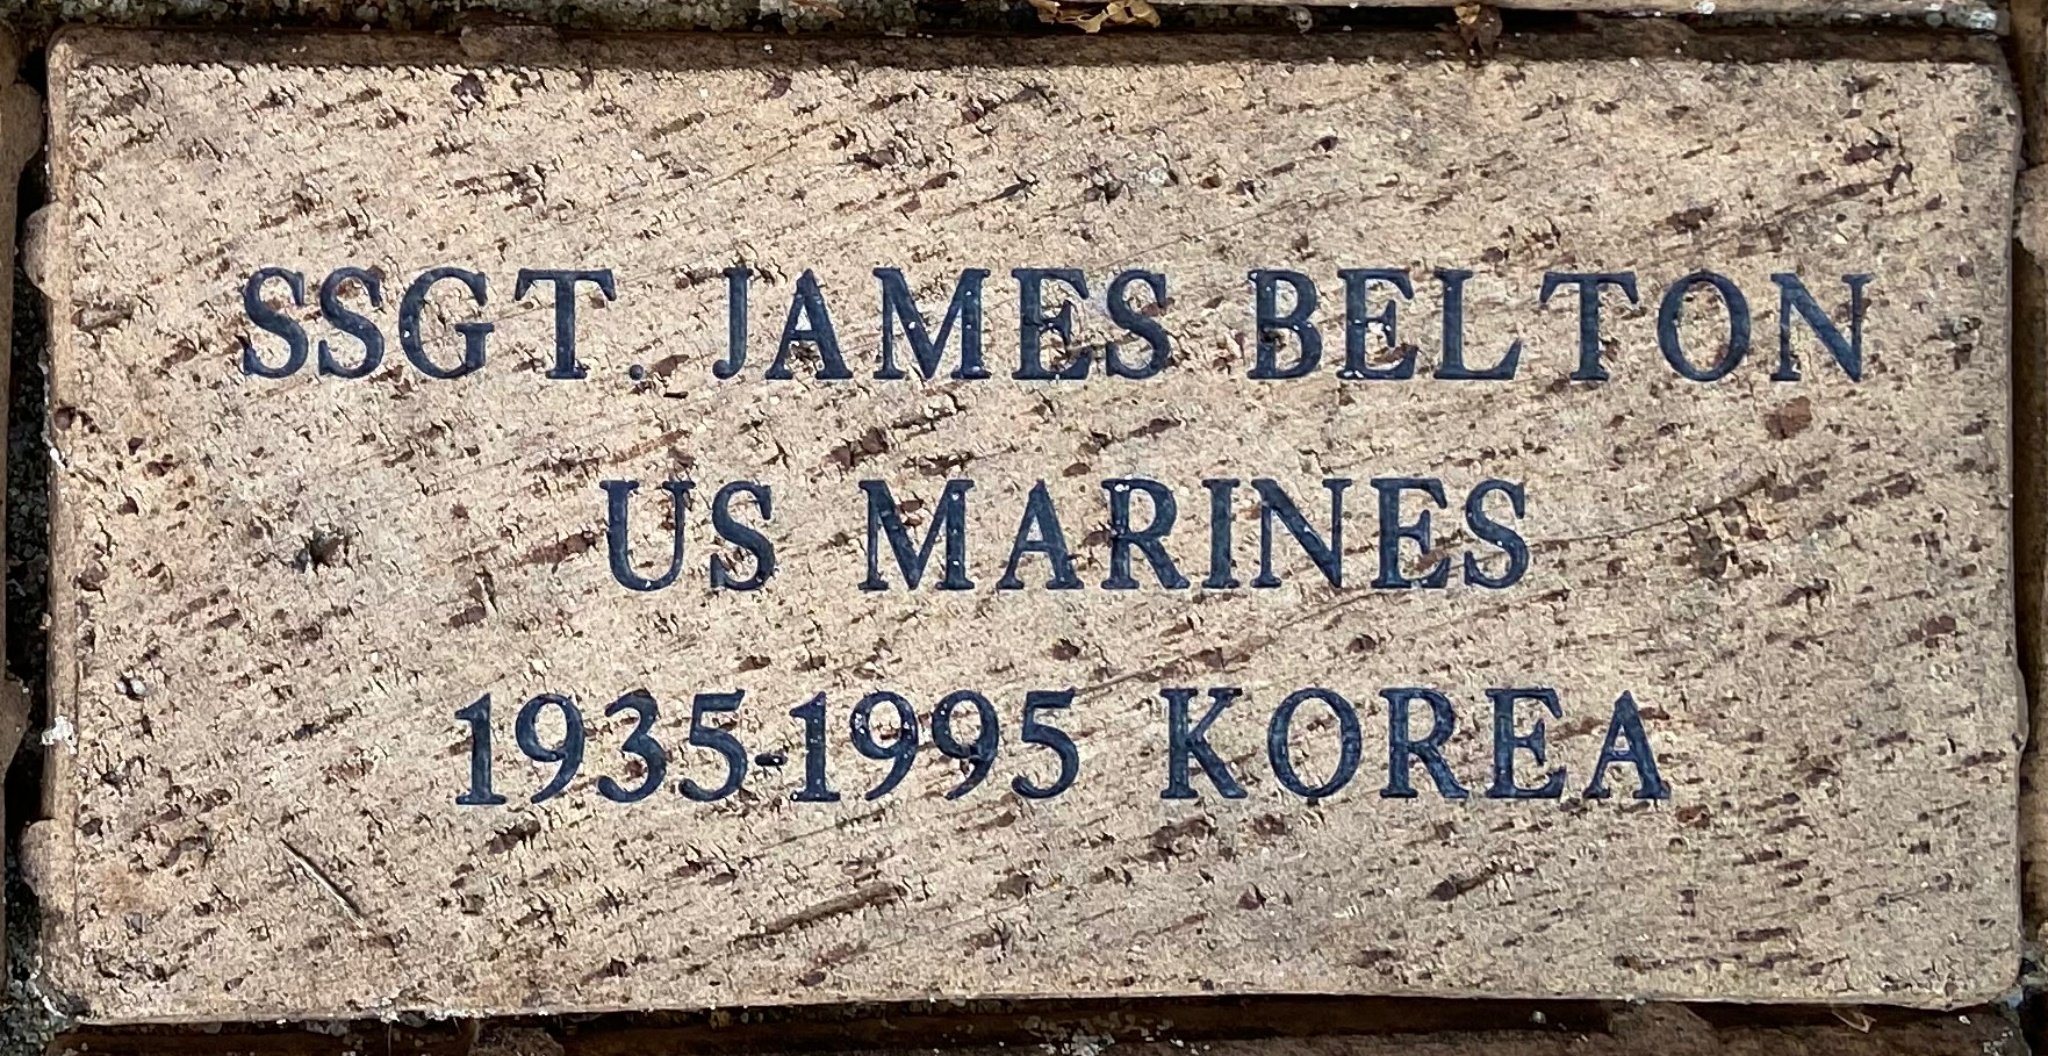 SSGT. JAMES BELTON US MARINES 1935-1995 – KOREA